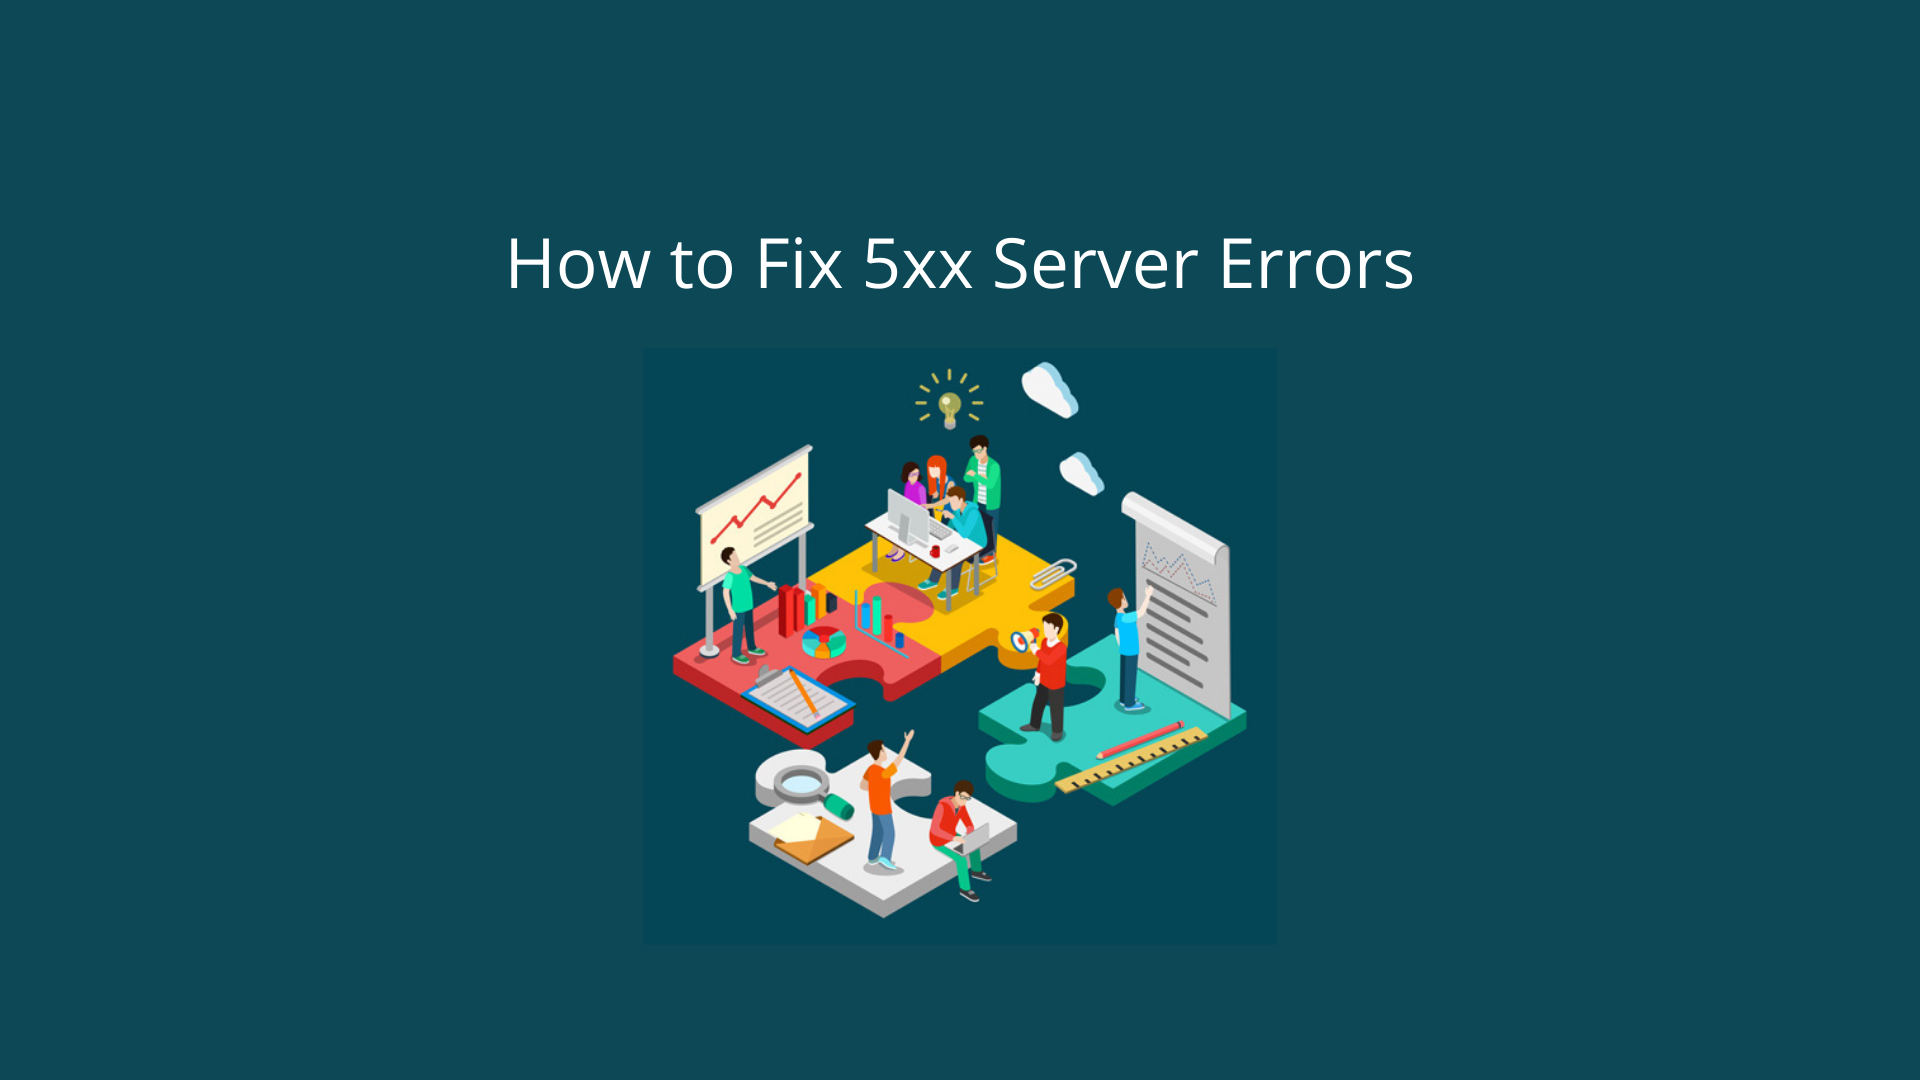 What causes 5xx Server Errors?